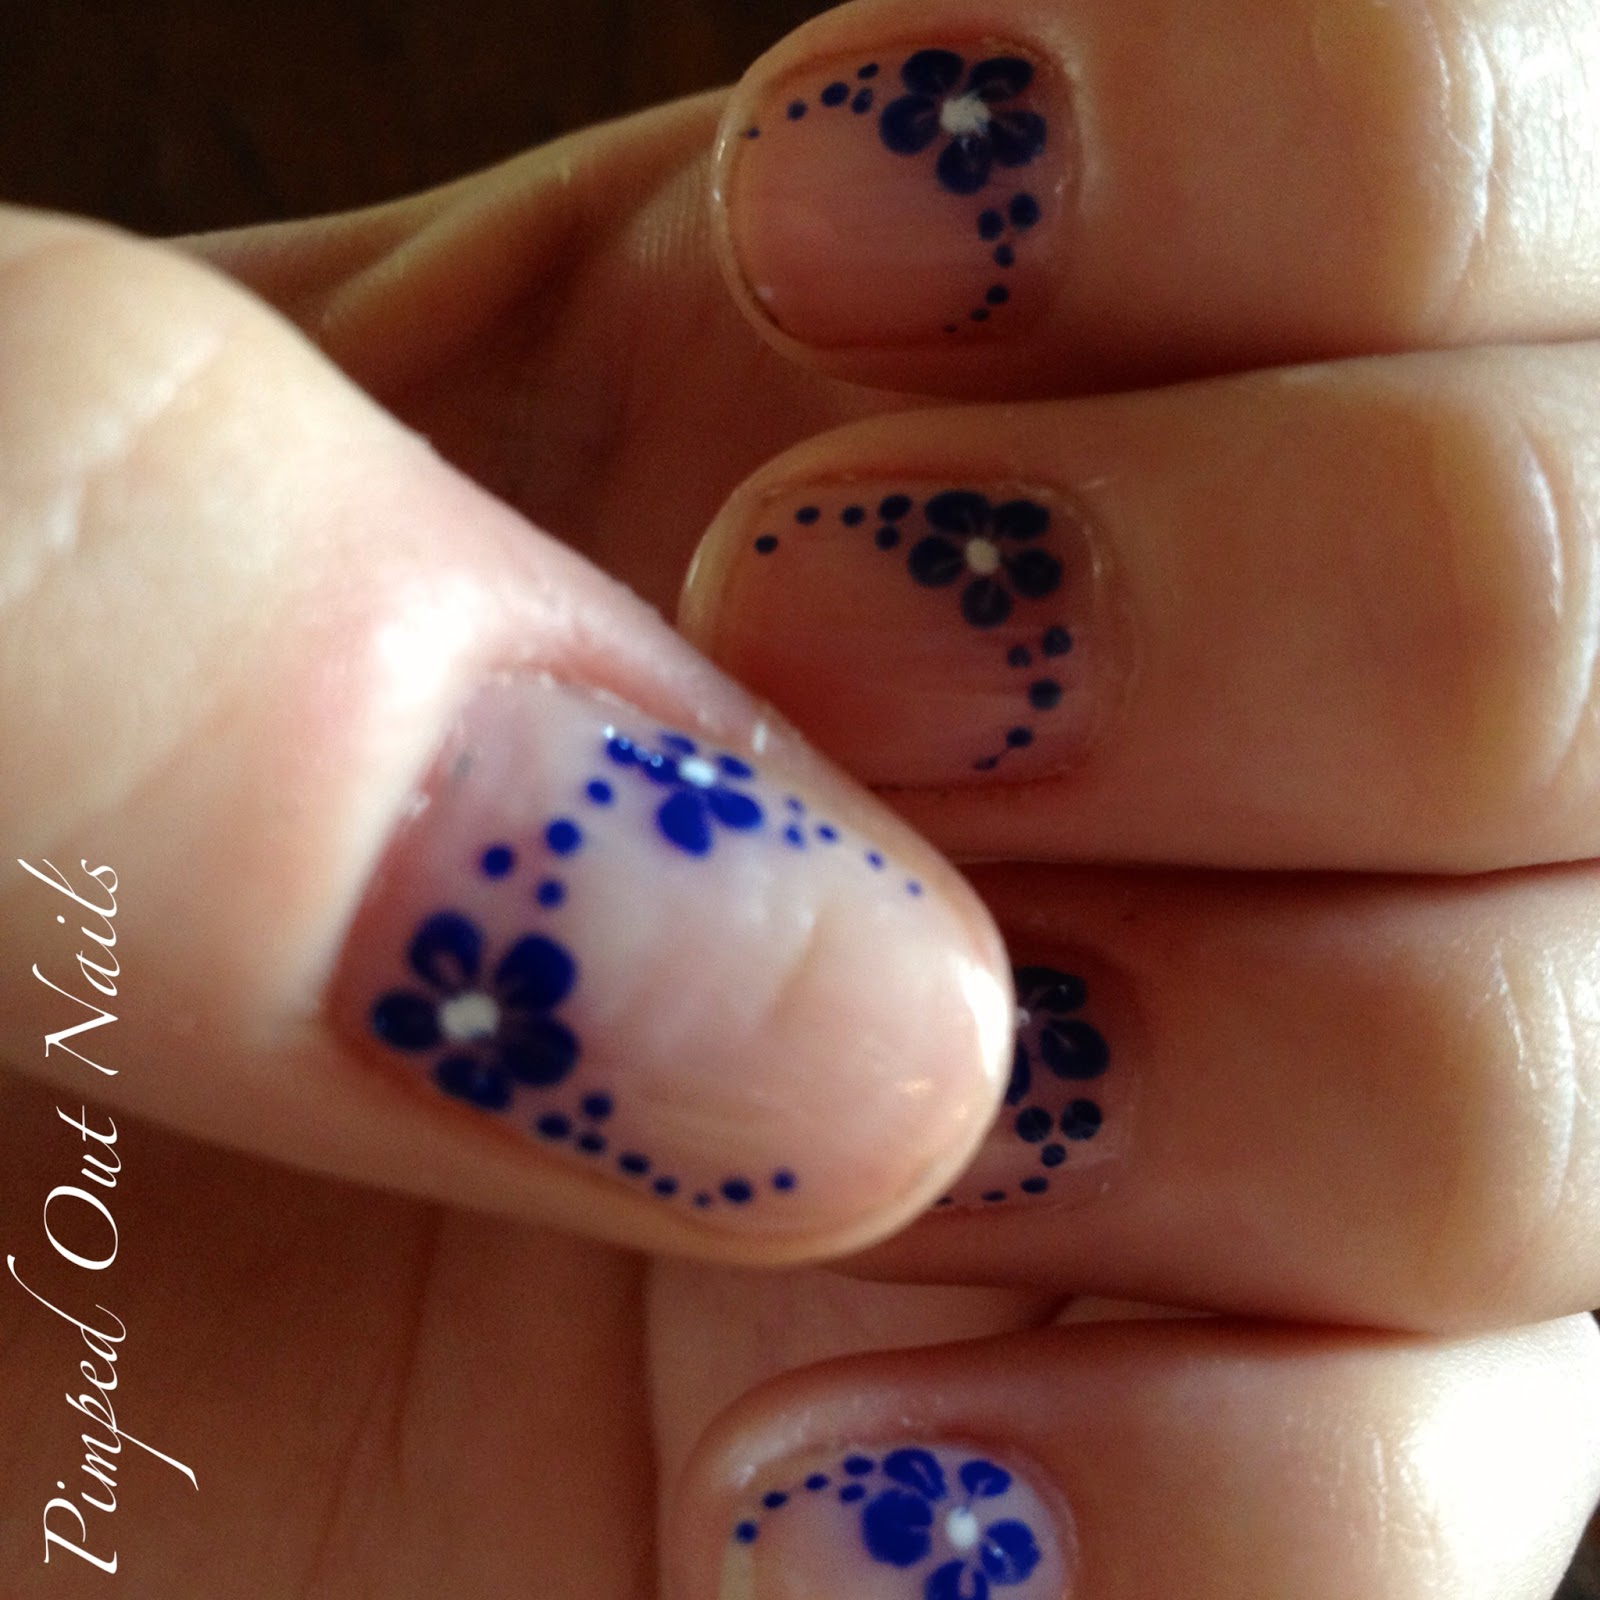 Pimped Out Nails: Bali Nails